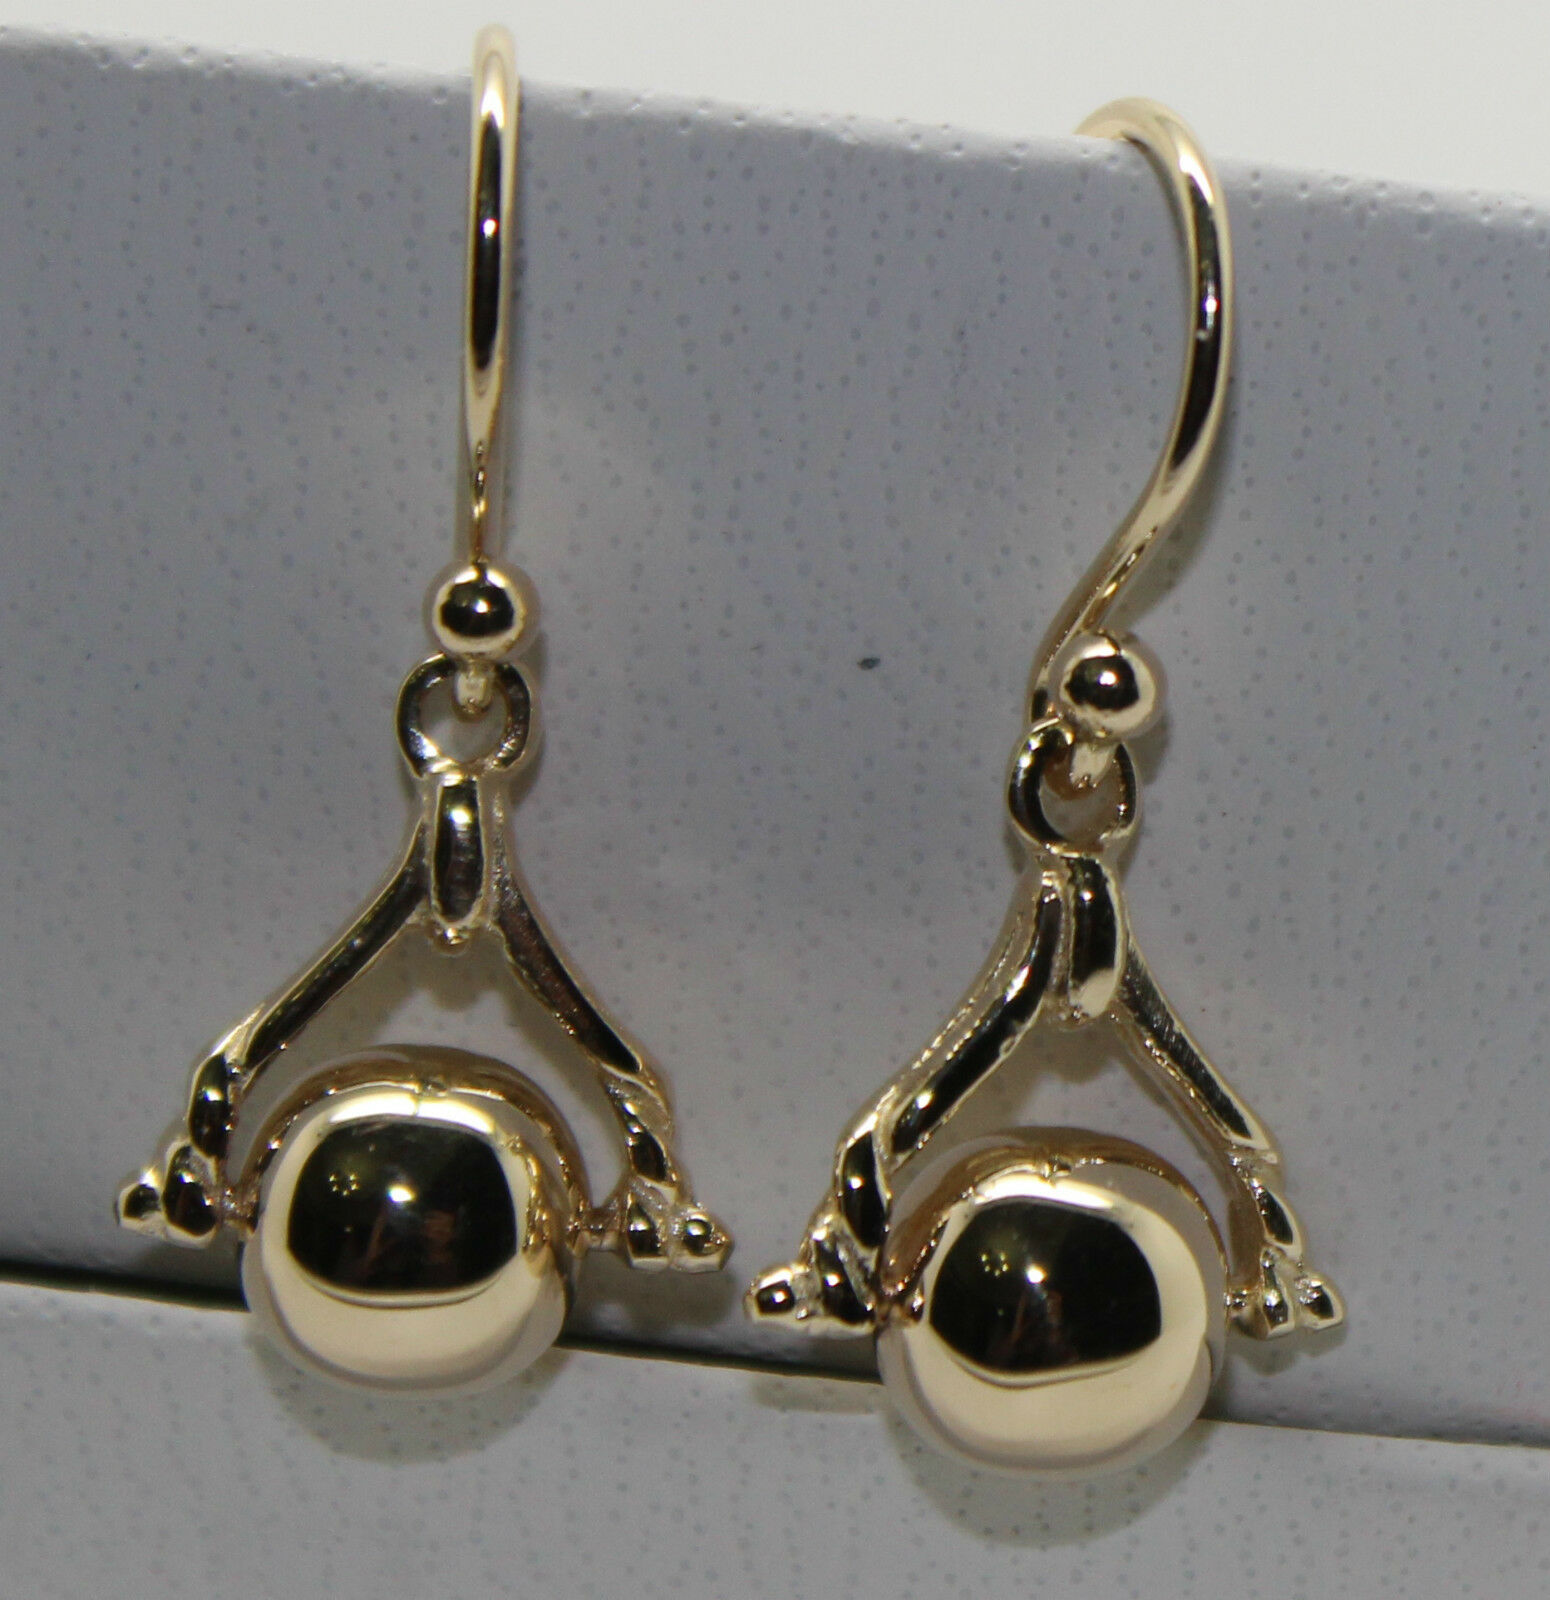 9CT  YELLOW gold PLAIN BALL SPINNER EARRINGS  FREE EXPRESS POST IN OZ